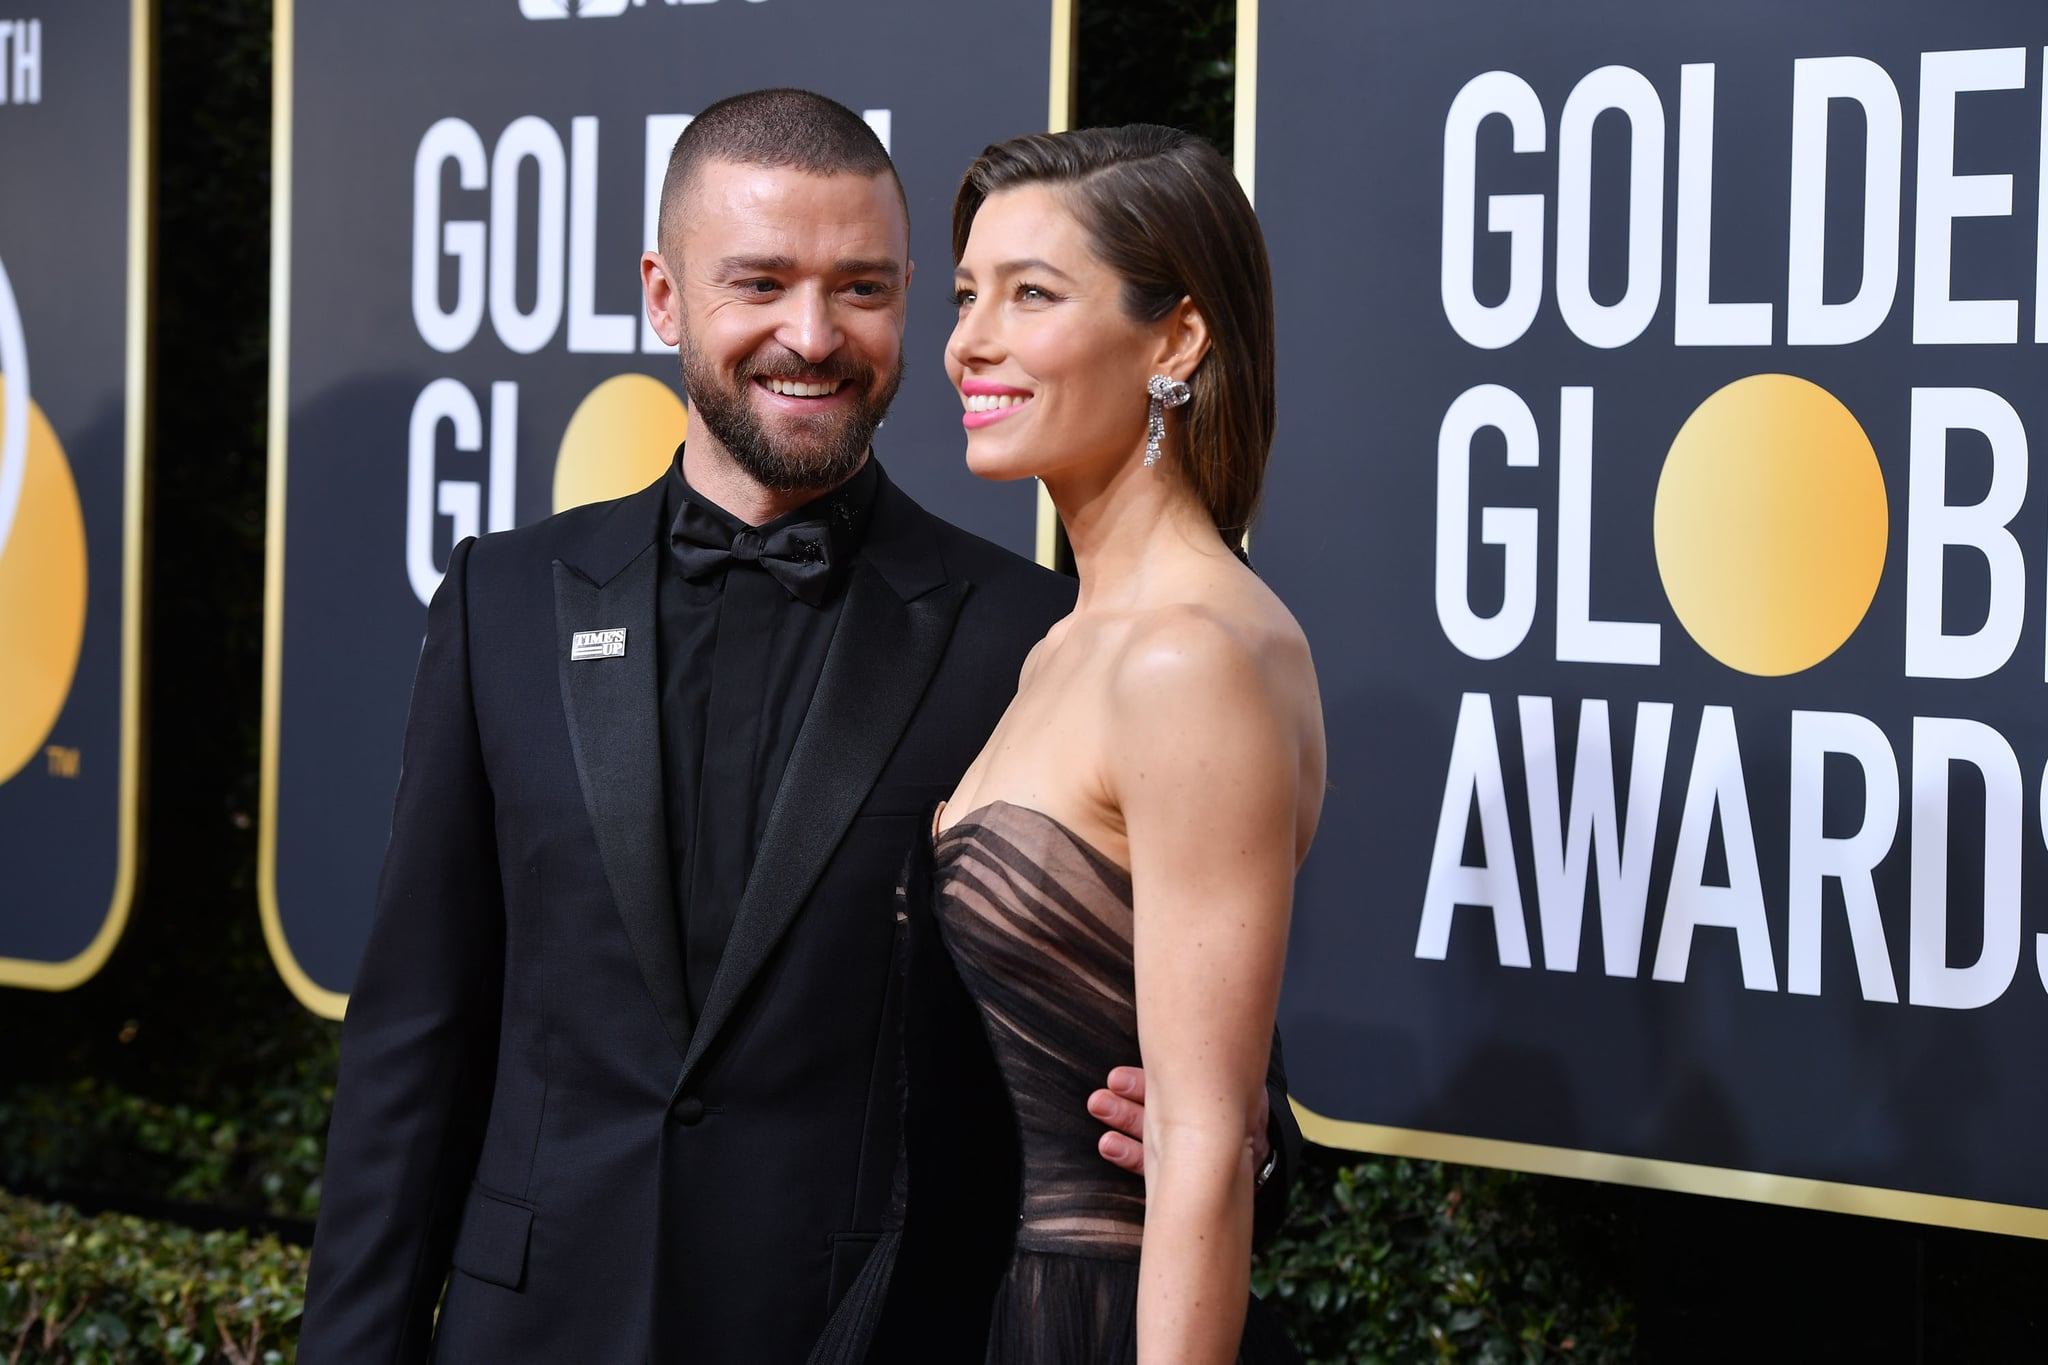 BEVERLY HILLS, CA - JANUARY 07:  Musician Justin Timberlake and actor Jessica Biel attend The 75th Annual Golden Globe Awards at The Beverly Hilton Hotel on January 7, 2018 in Beverly Hills, California.  (Photo by George Pimentel/WireImage)